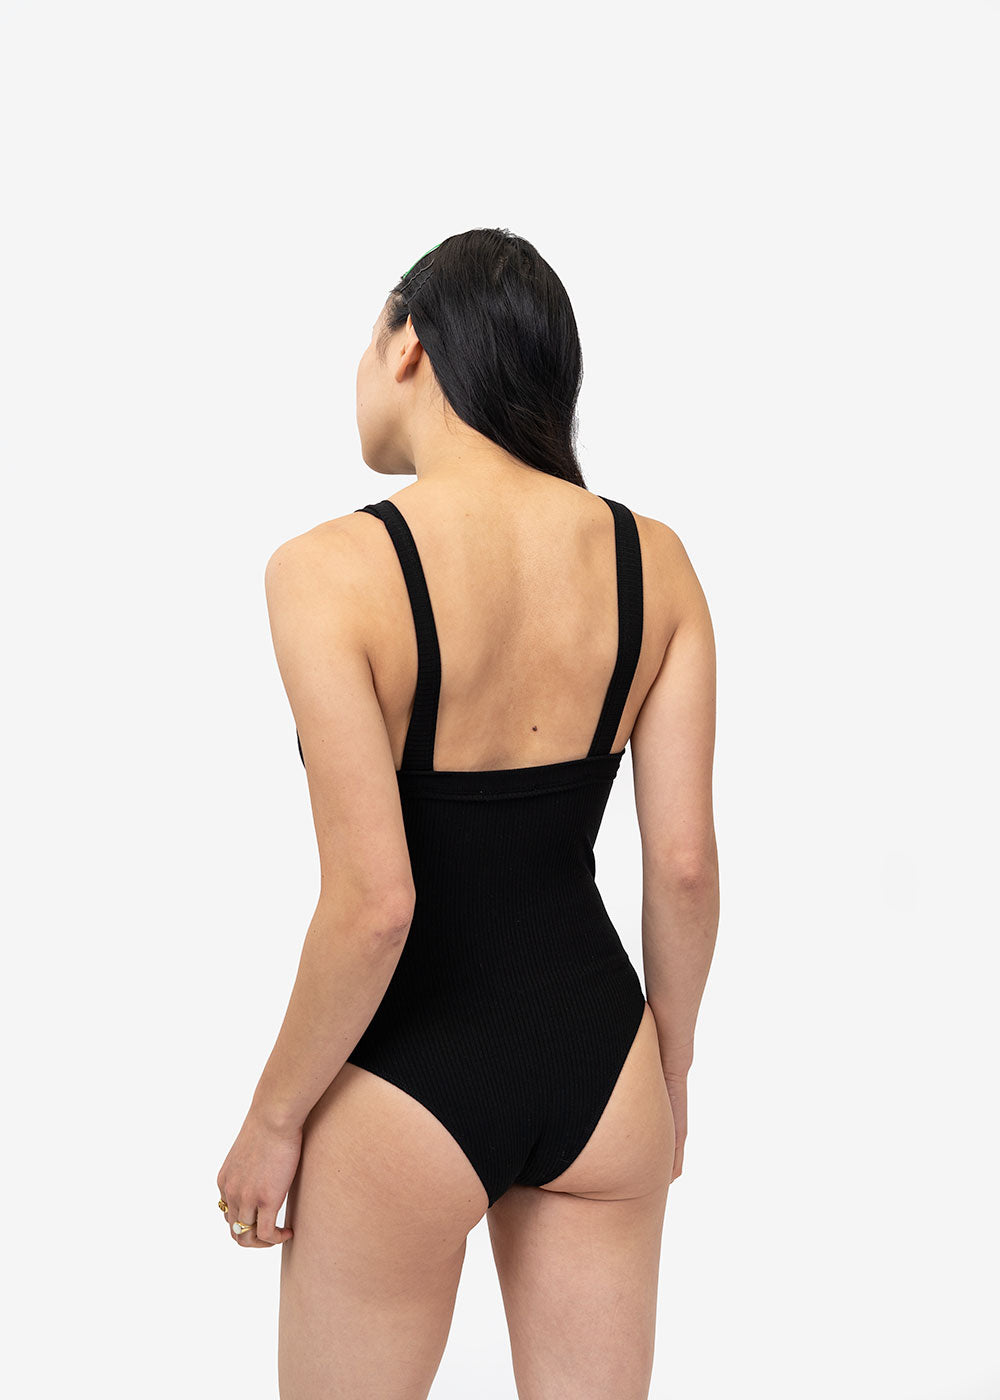 Angie Bauer Black Holland Bodysuit — Shop sustainable fashion and slow fashion at New Classics Studios